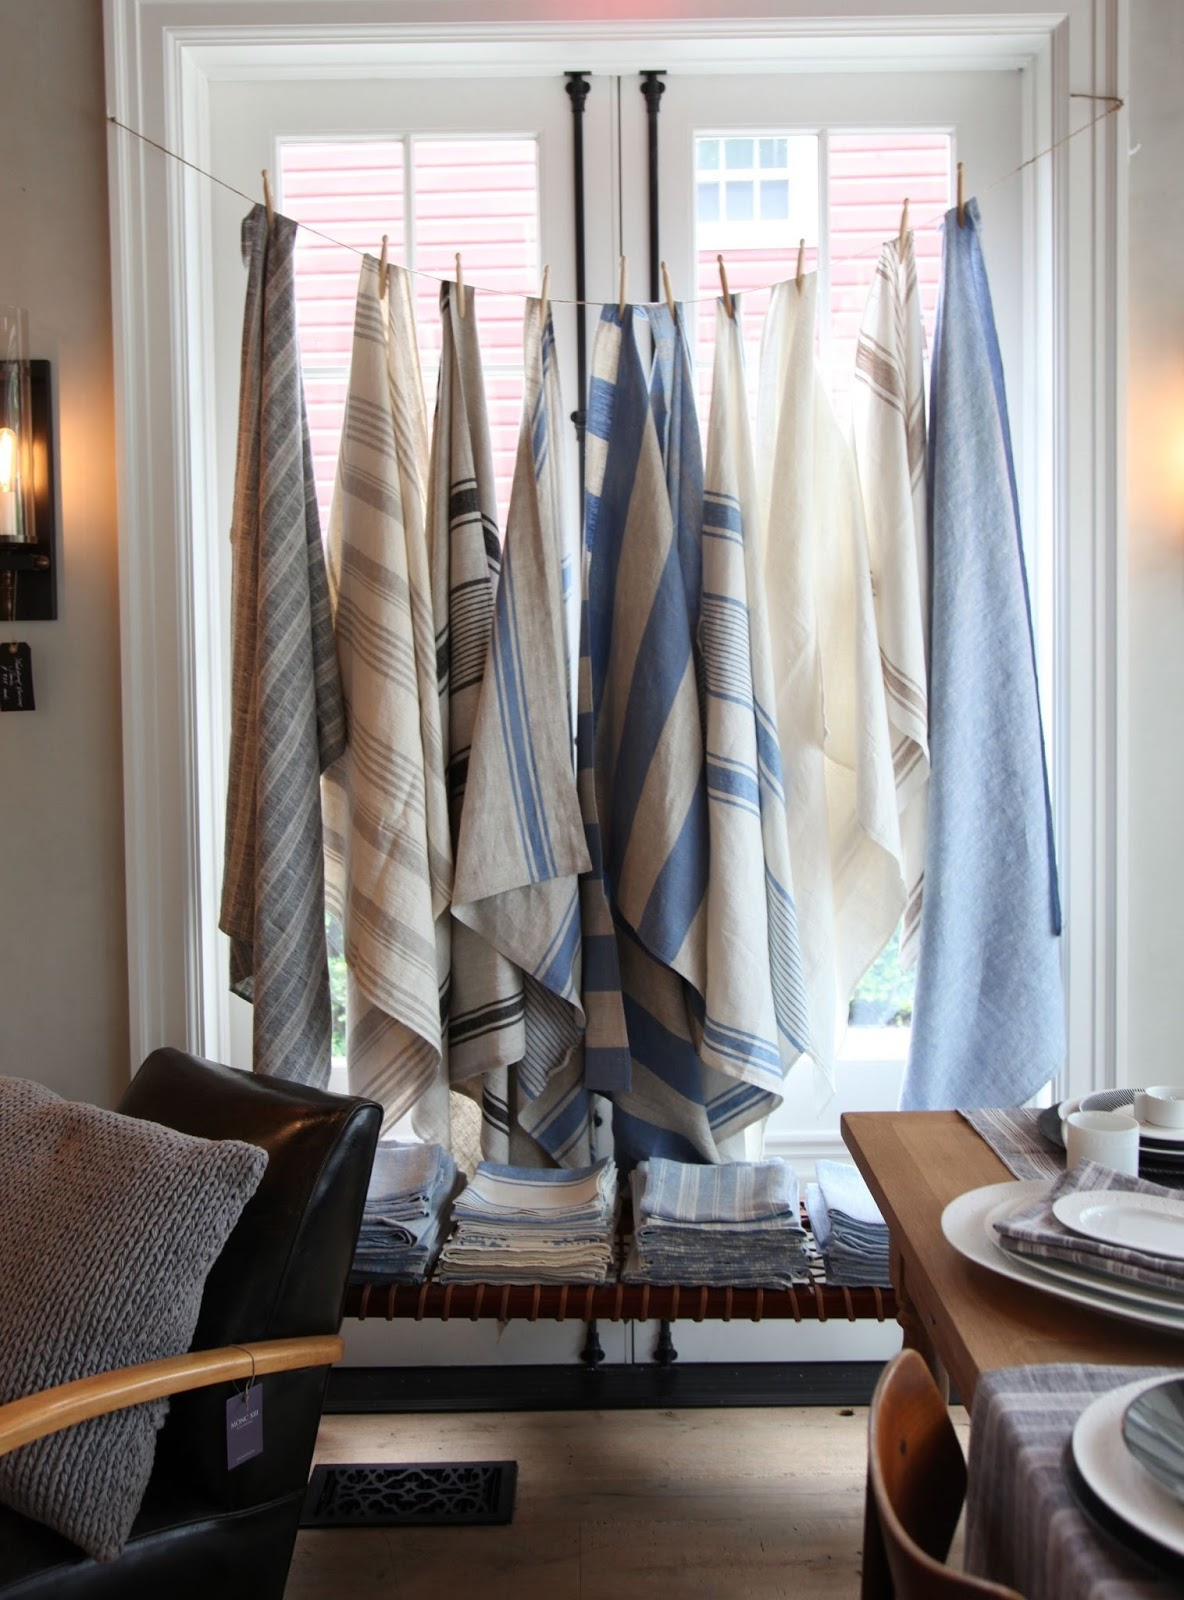 Sag Harbor House By P T Interiors With Images: Habitually Chic®: Chic In Sag Harbor: MONC XIII